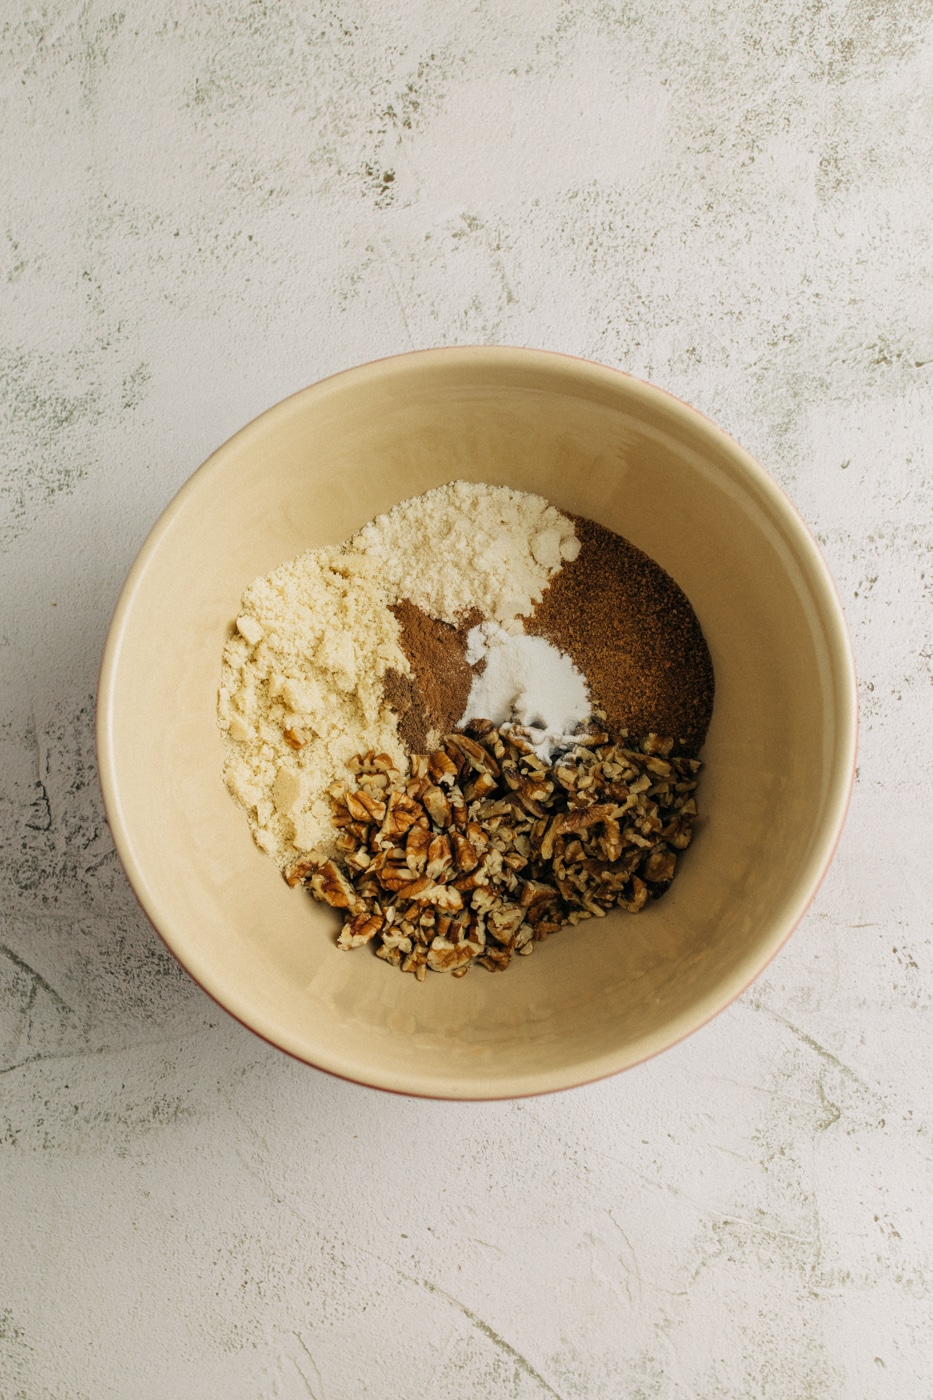 Image of dry ingredients in a mixing bowl